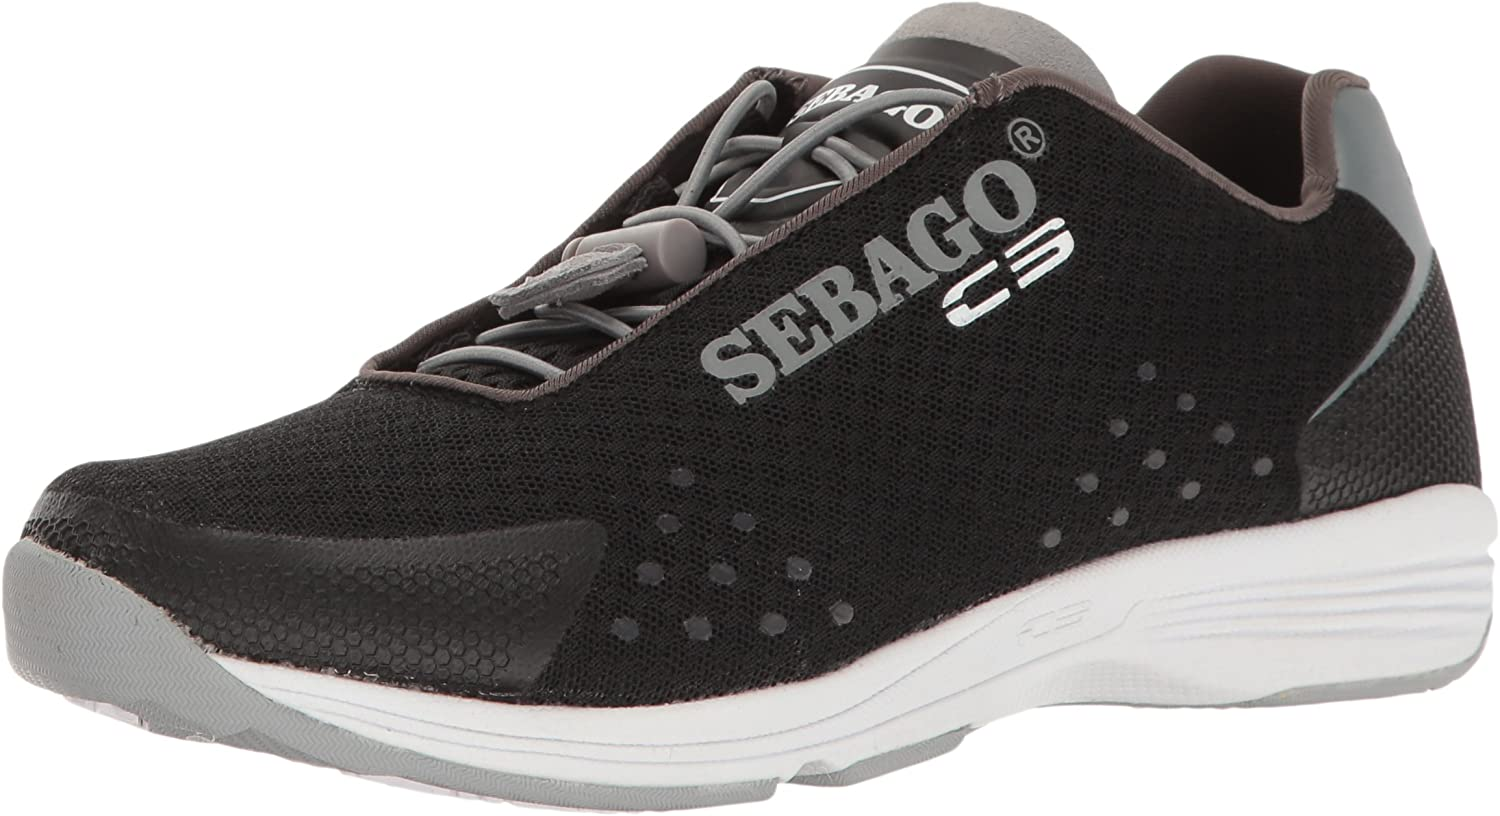 Sebago Womens Cyphone Sea Sport Boating shoes